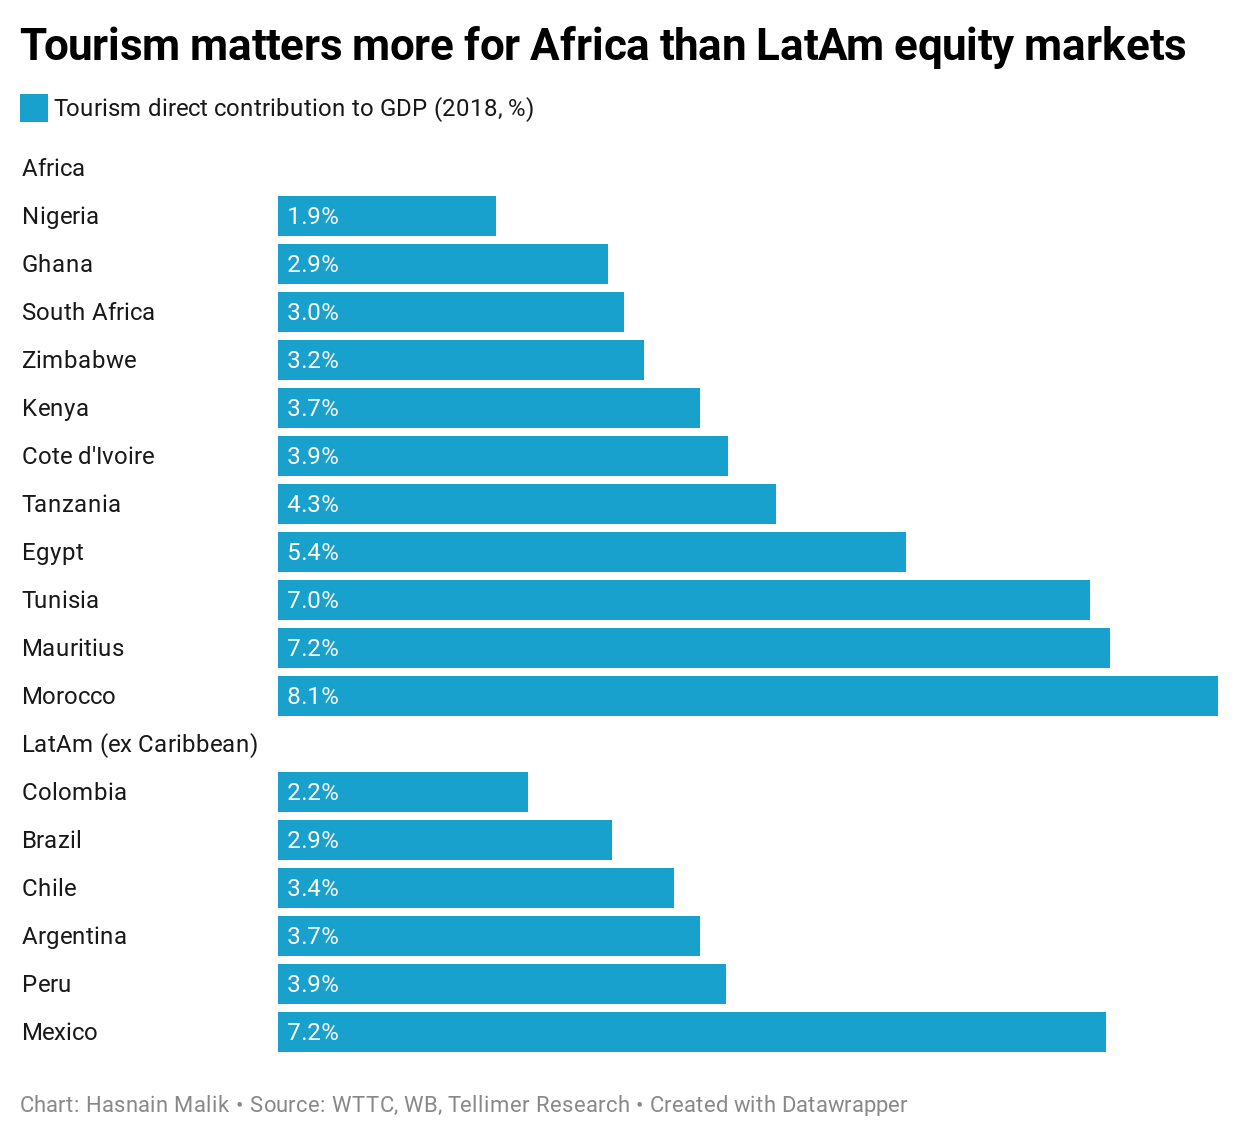 Tourism matters more for Africa than LatAm equity markets